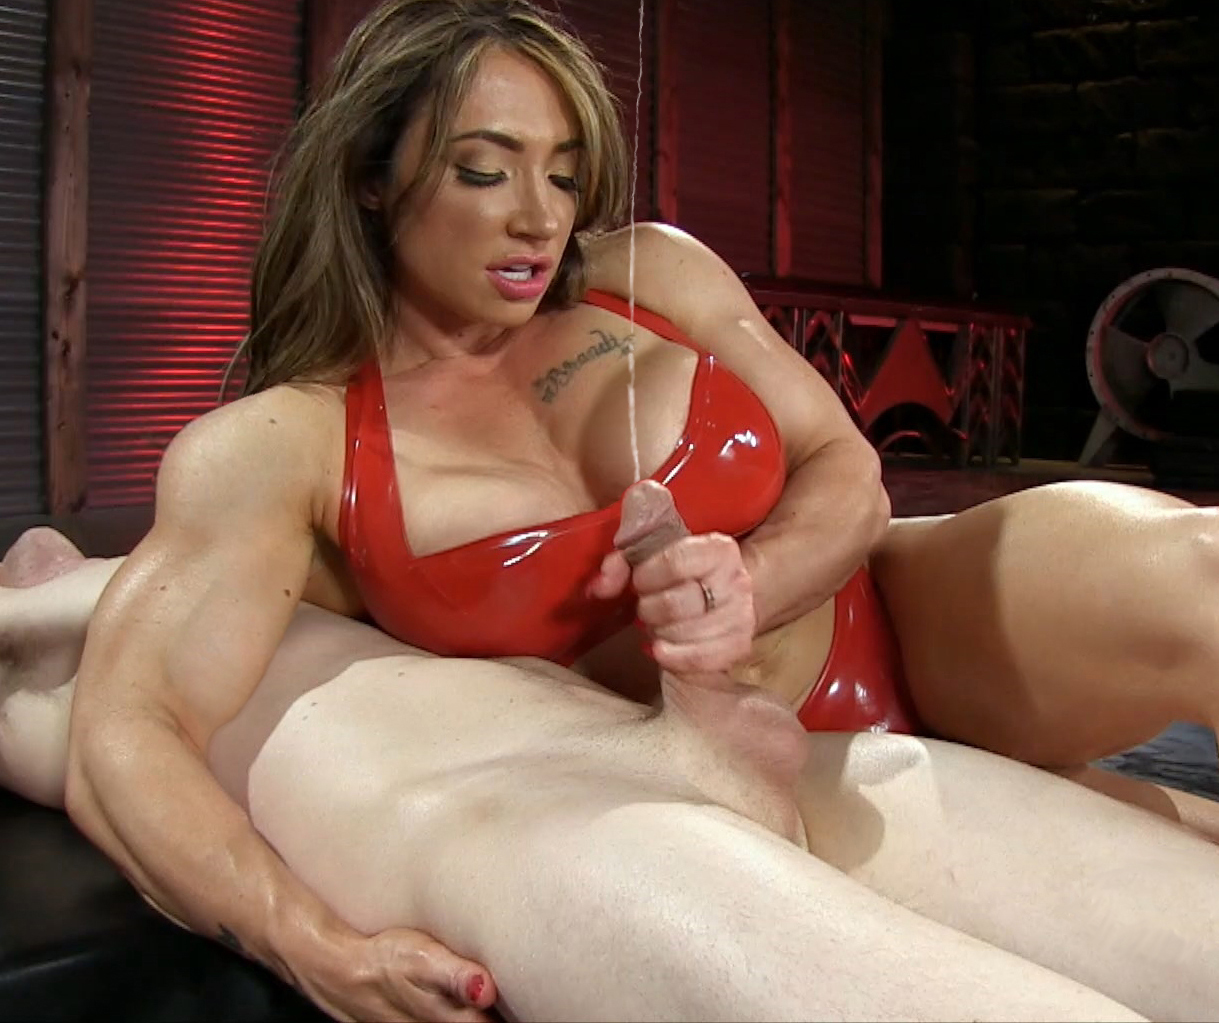 Female muscle domination videos, videos of girls masturbating and coming